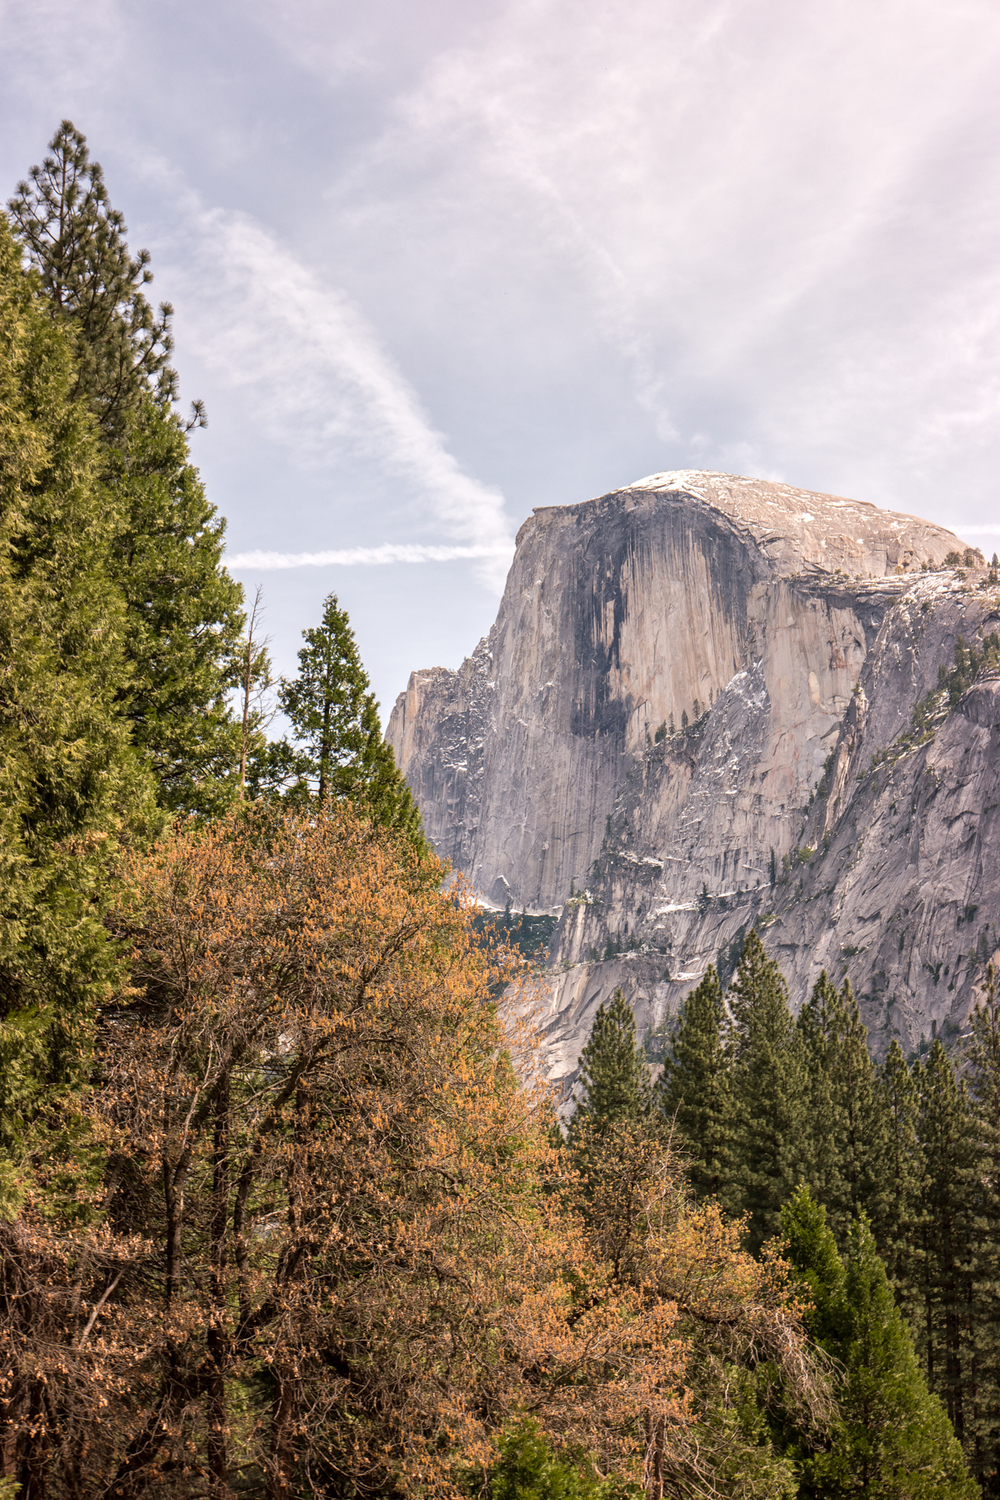 Wasim Muklashy Photography_April 2015_Yosemite_California_Samsung NX500_ SAM_1640_1800px.jpg